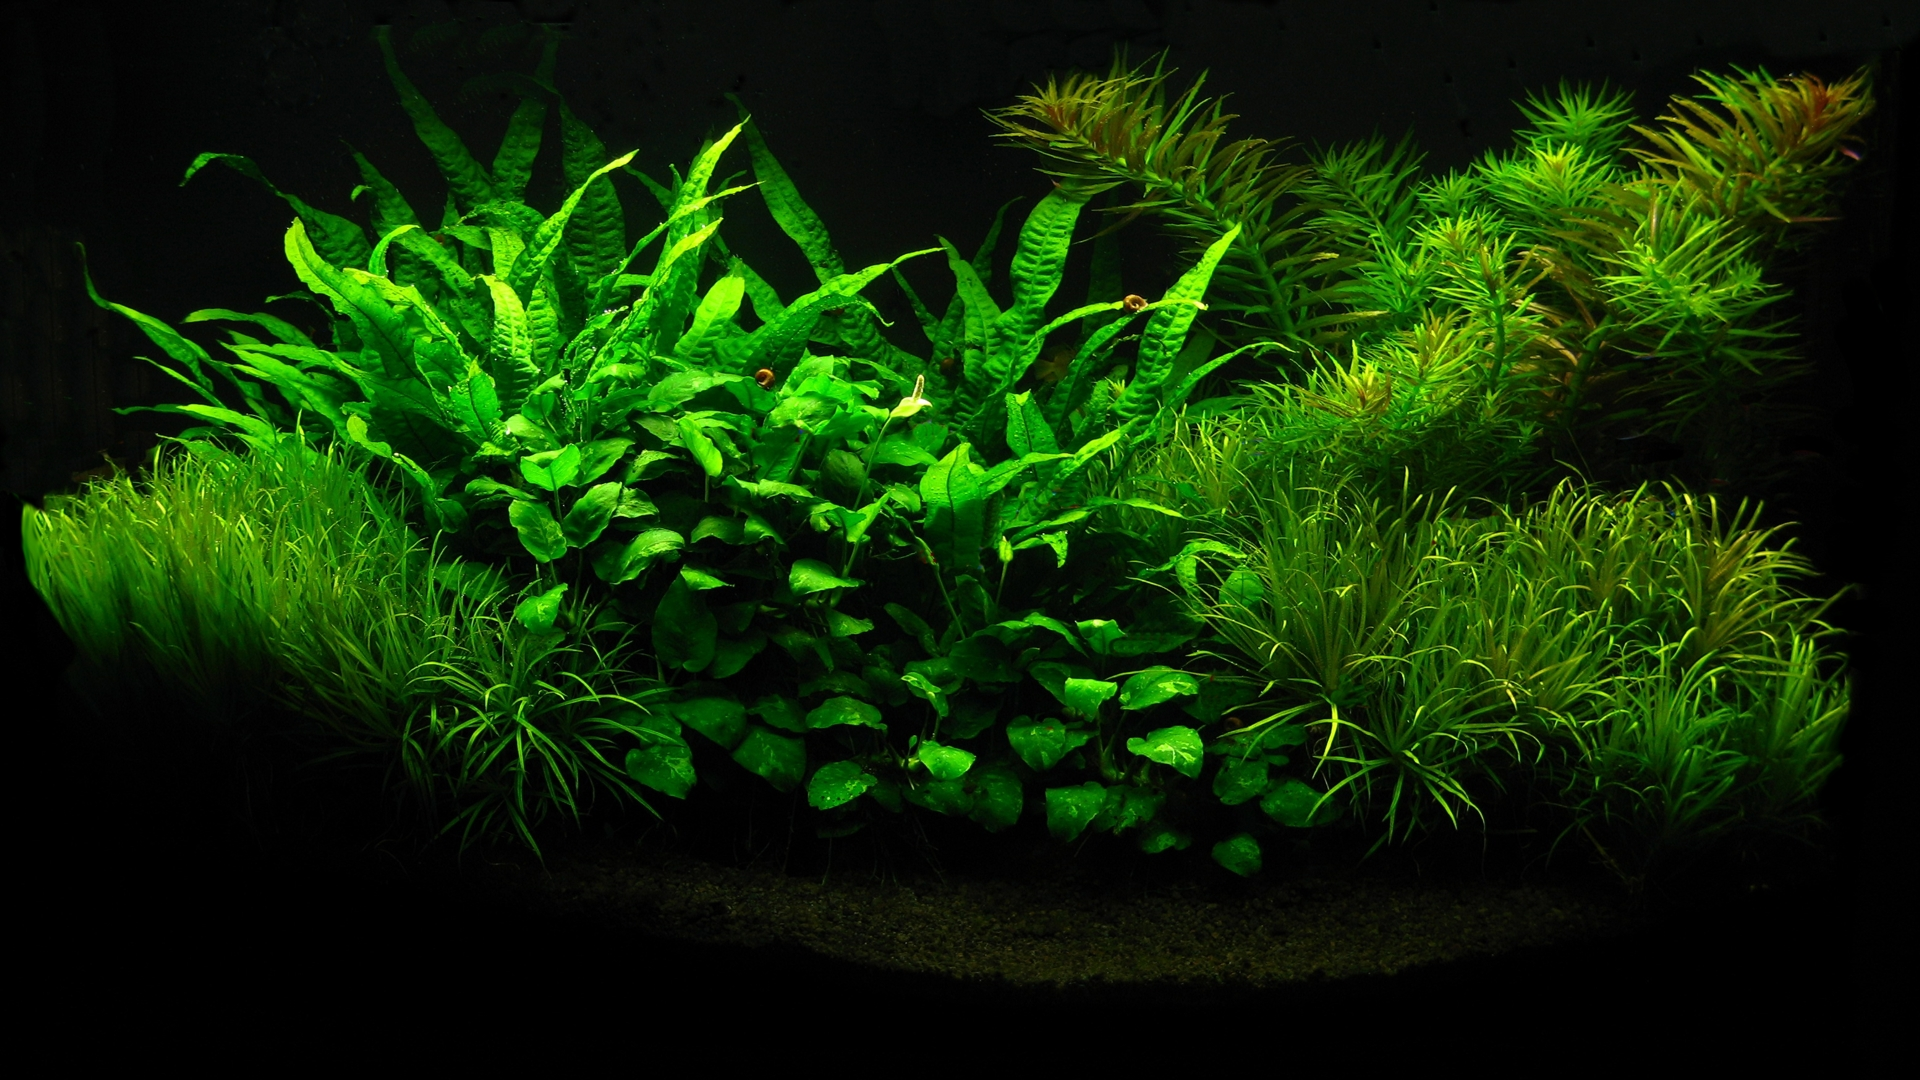 47 Hd Aquarium Wallpaper On Wallpapersafari